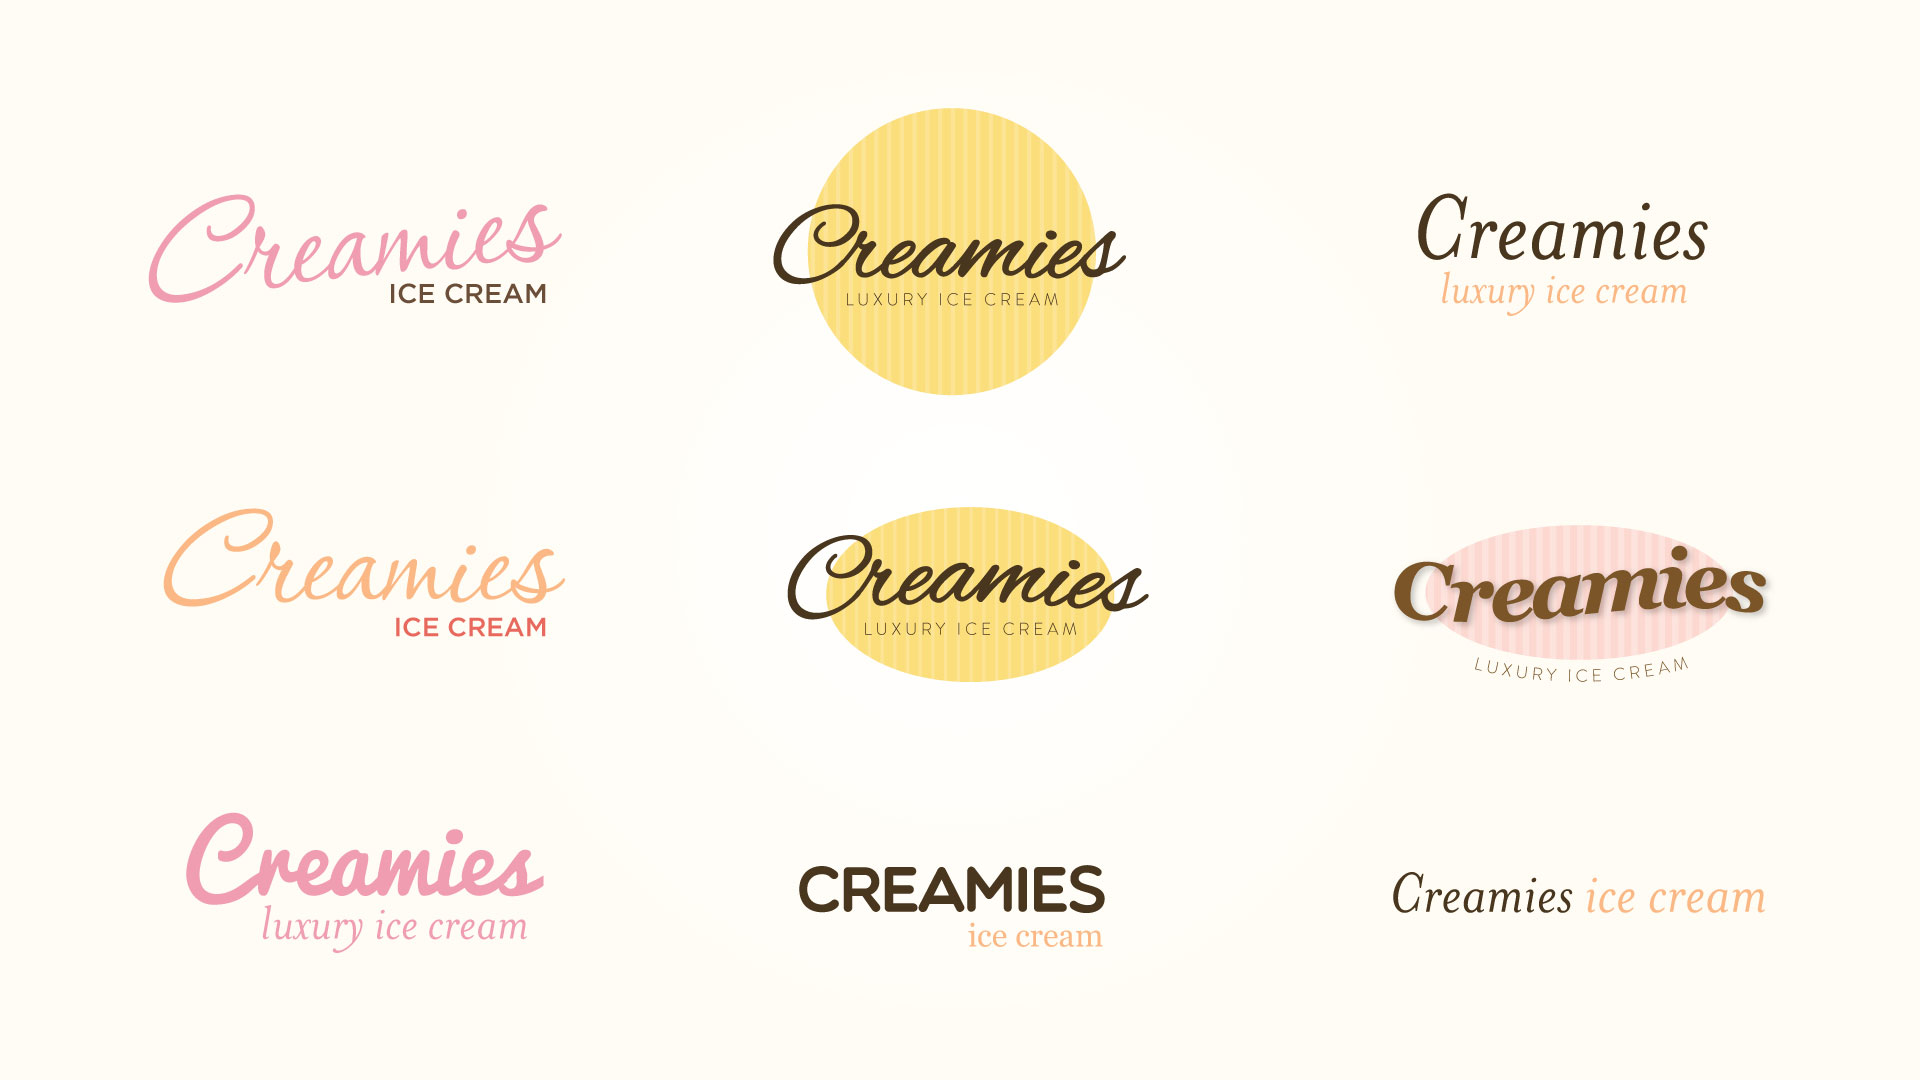 Creamies-graphics-for-website2